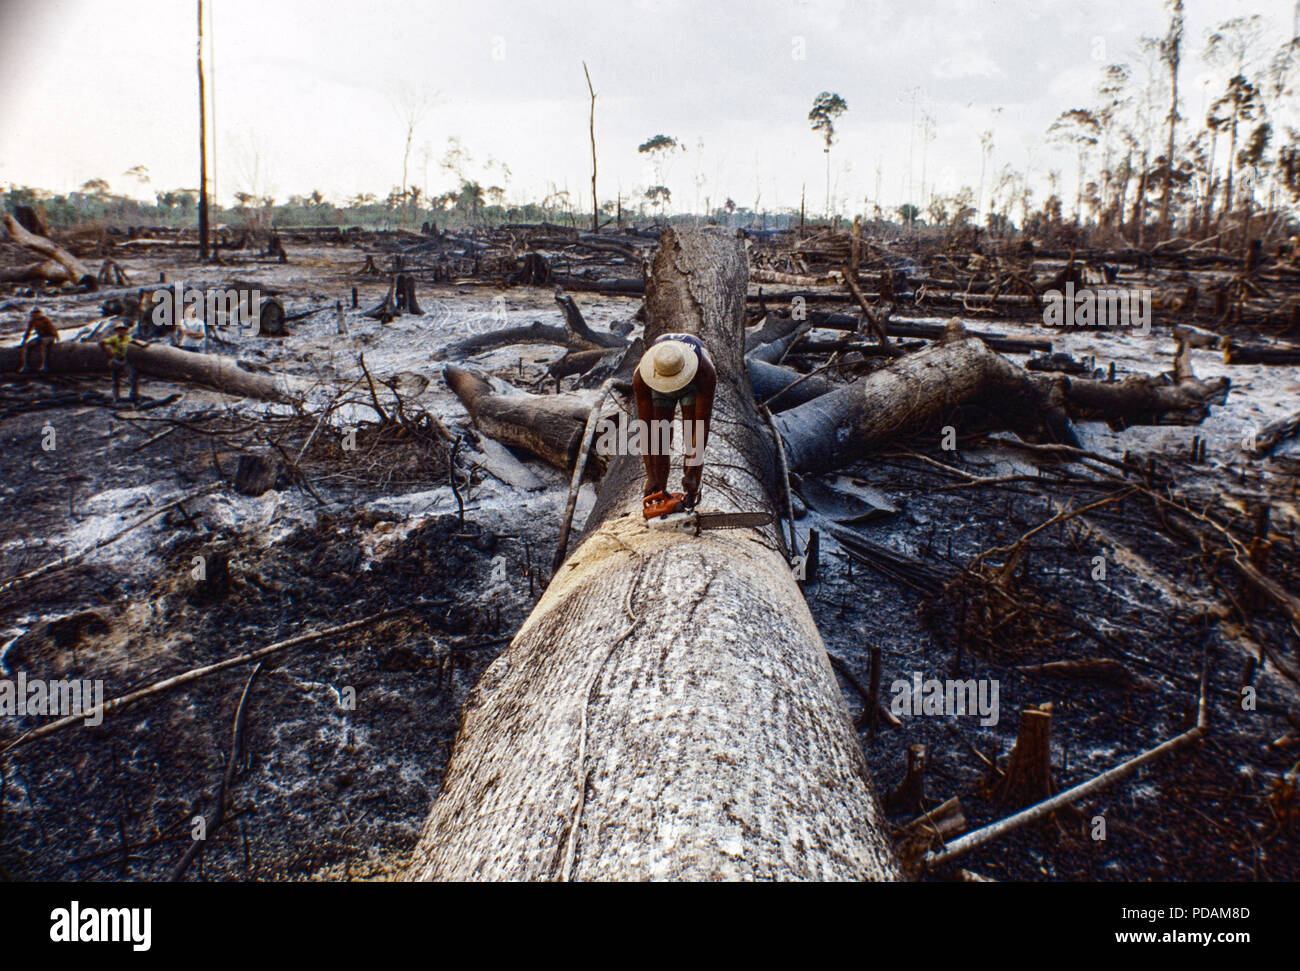 Logging, Amazon rainforest clearance, workers cut down a large tree using chainsaw, Acre State, Brazil. - Stock Image